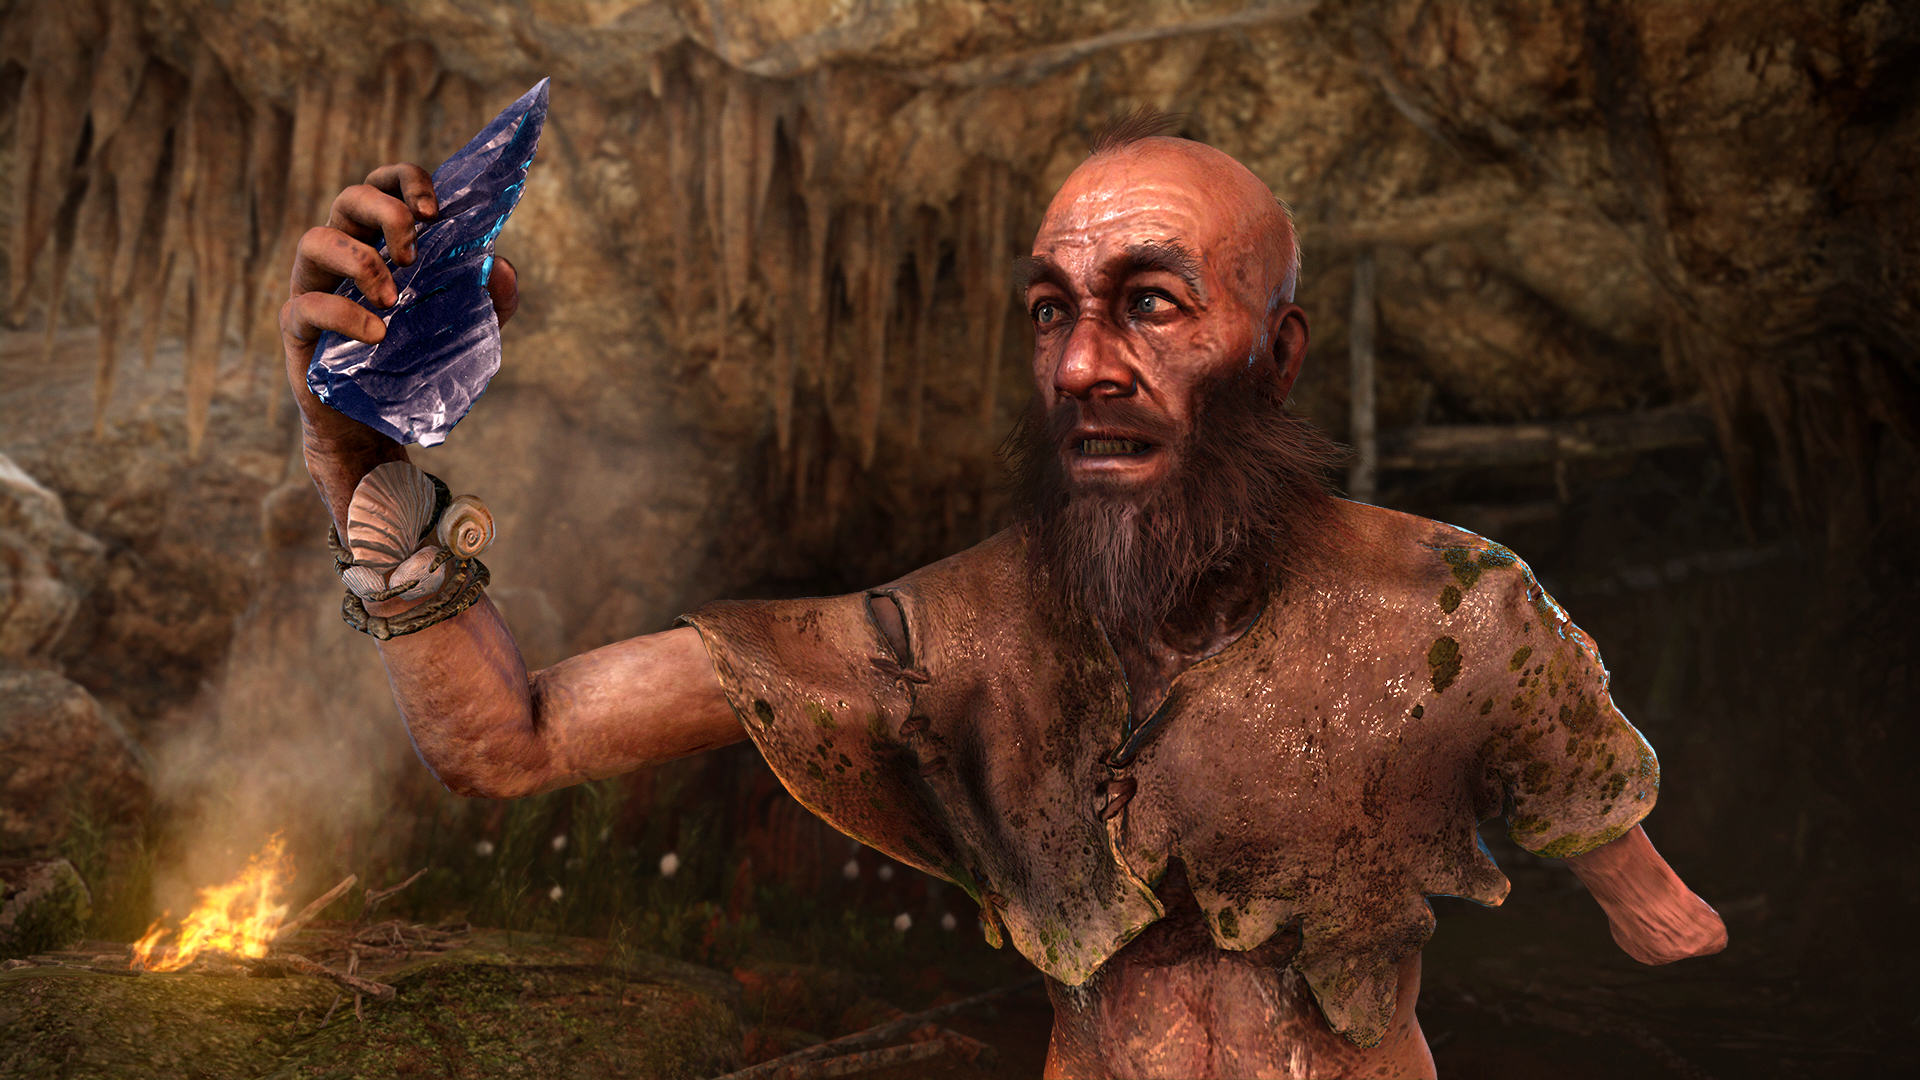 An Exclusive Look At Far Cry Primal Ahead Of Release Day FCP 04 Crafter  Screenshots PREVIEW PR 160126 6pm CET 1453716682